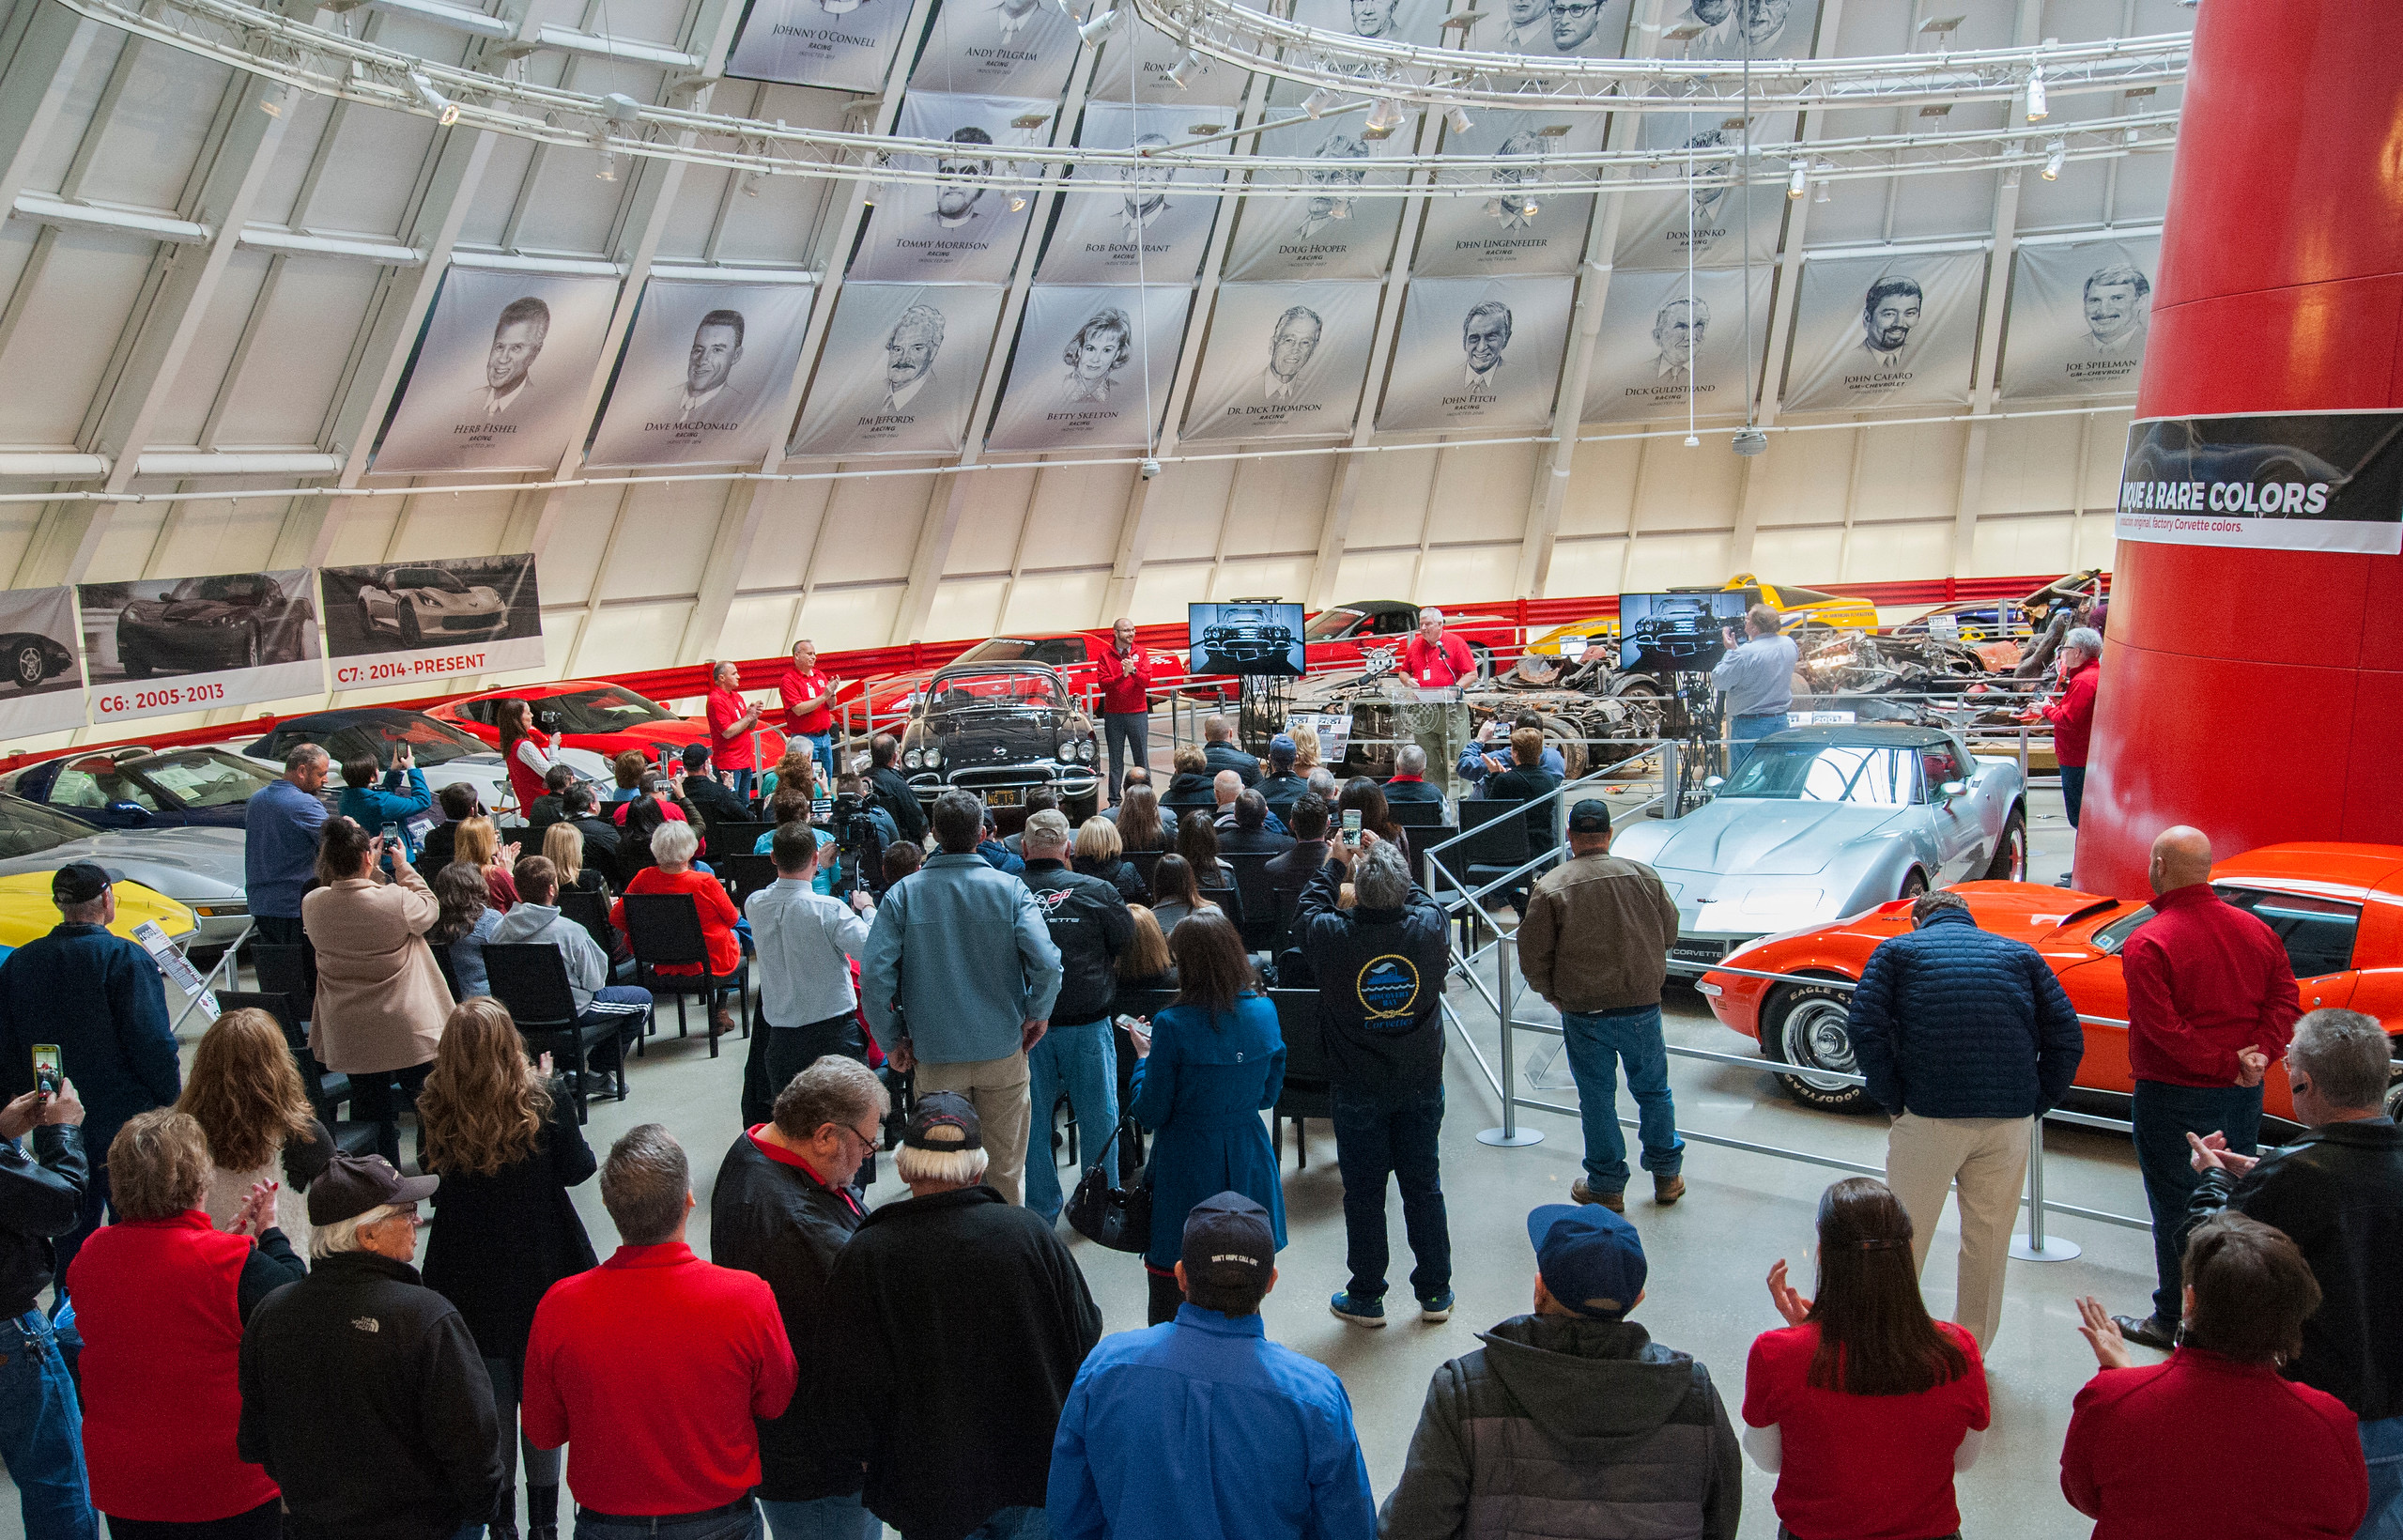 Final sinkhole Corvette returns to Skydome display | ClassicCars.com